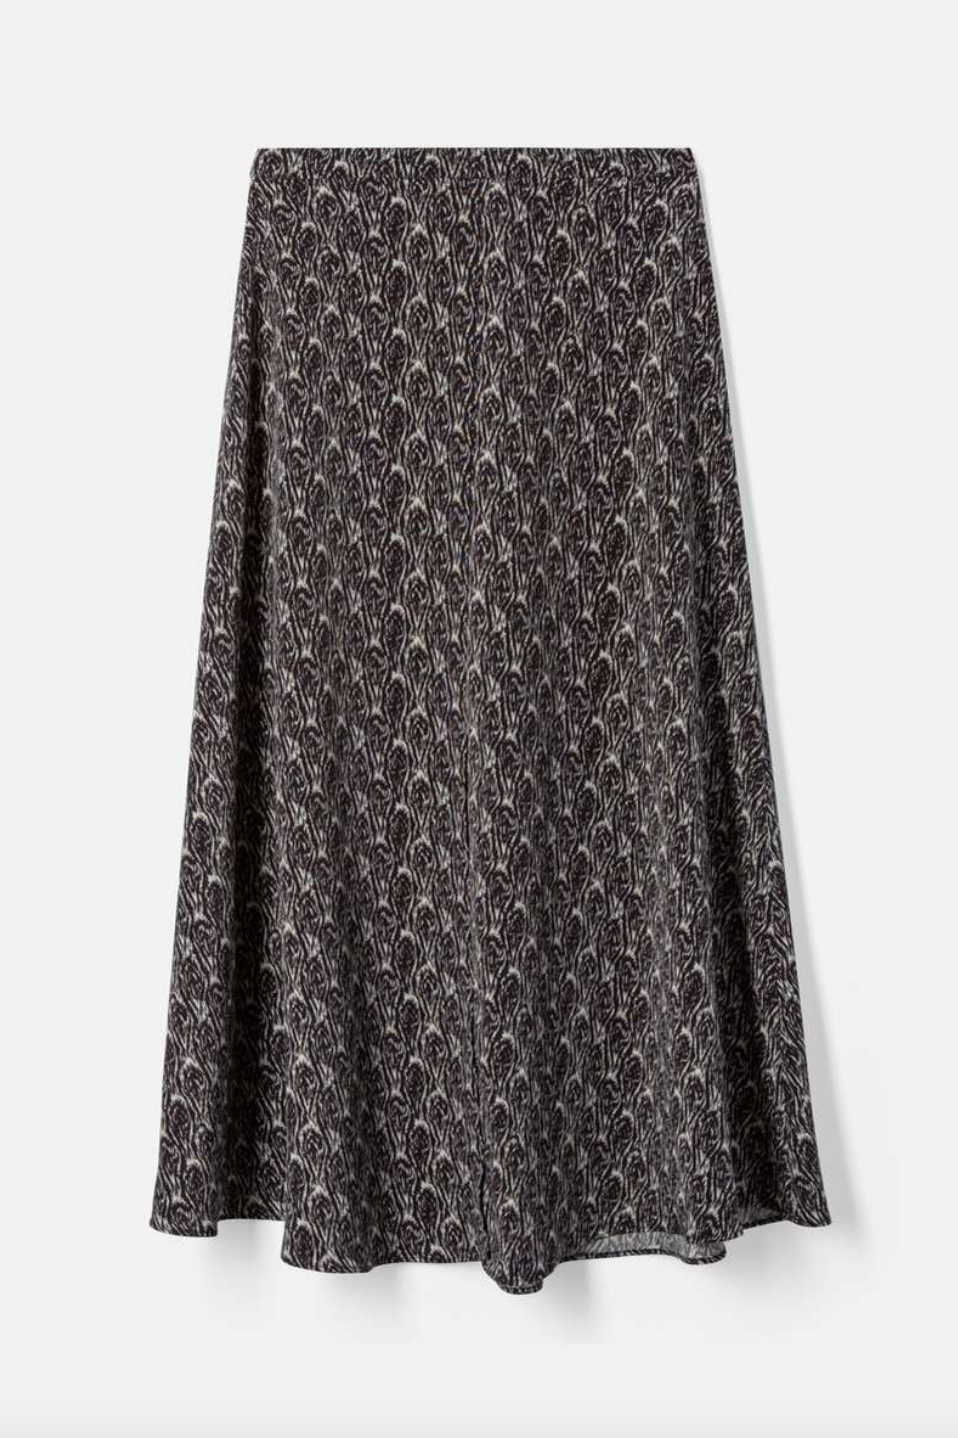 vanessa Bruno High Waisted Midi Skirt with Front Slit in Black and White Patterned Print